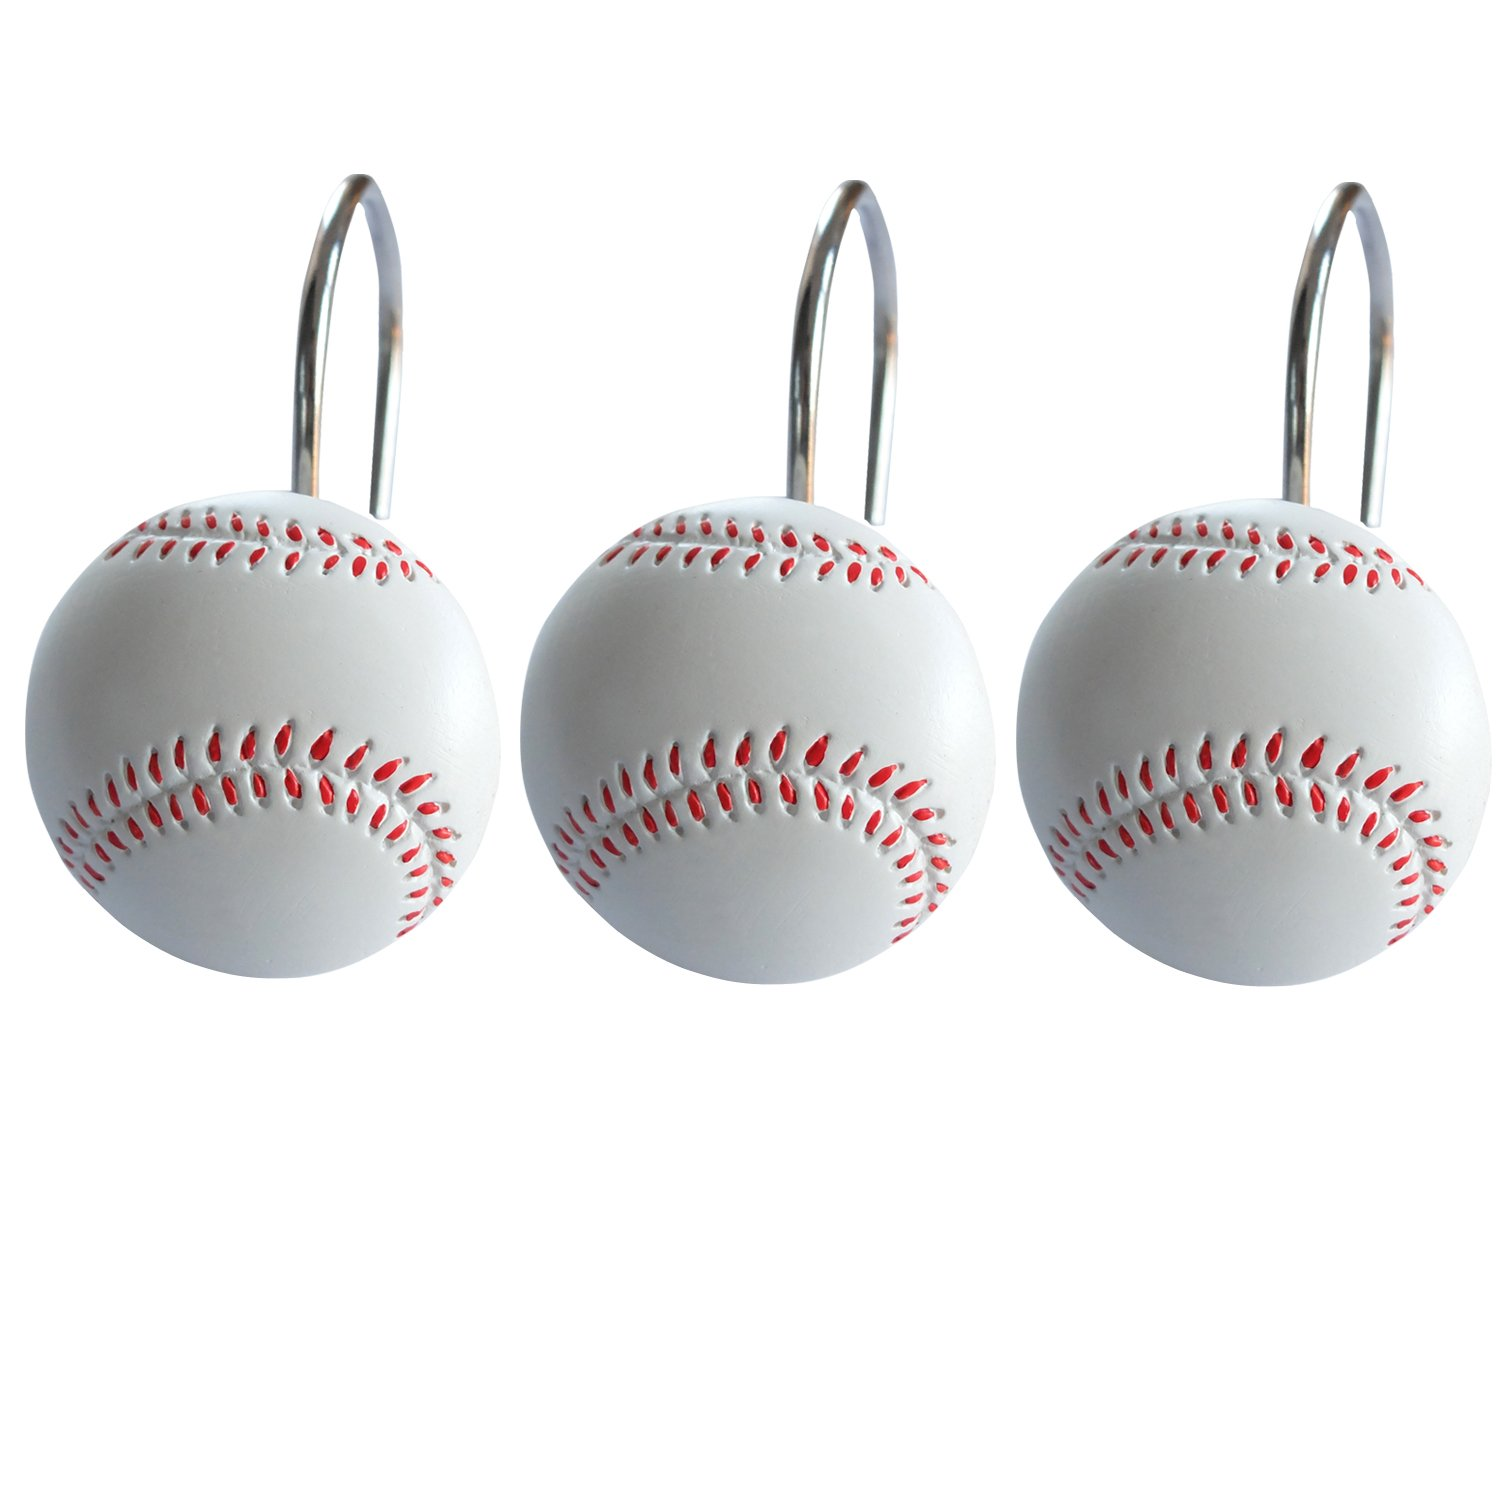 Doupoo Home Decorative Baseball Shower Curtain Hooks Set Of 12 StarsHouse